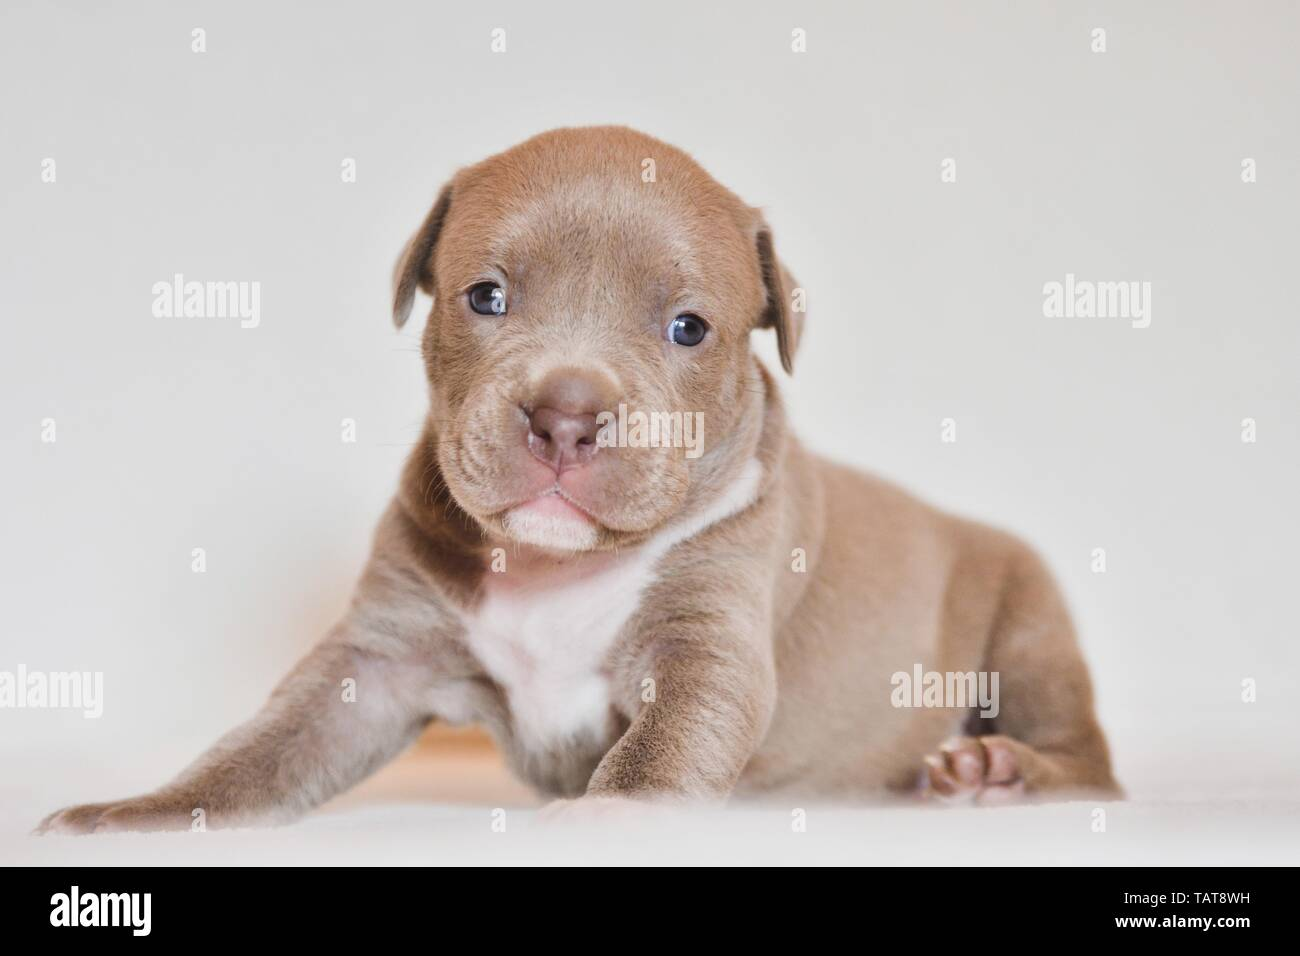 American Pit Bull Terrier Puppy - Stock Image